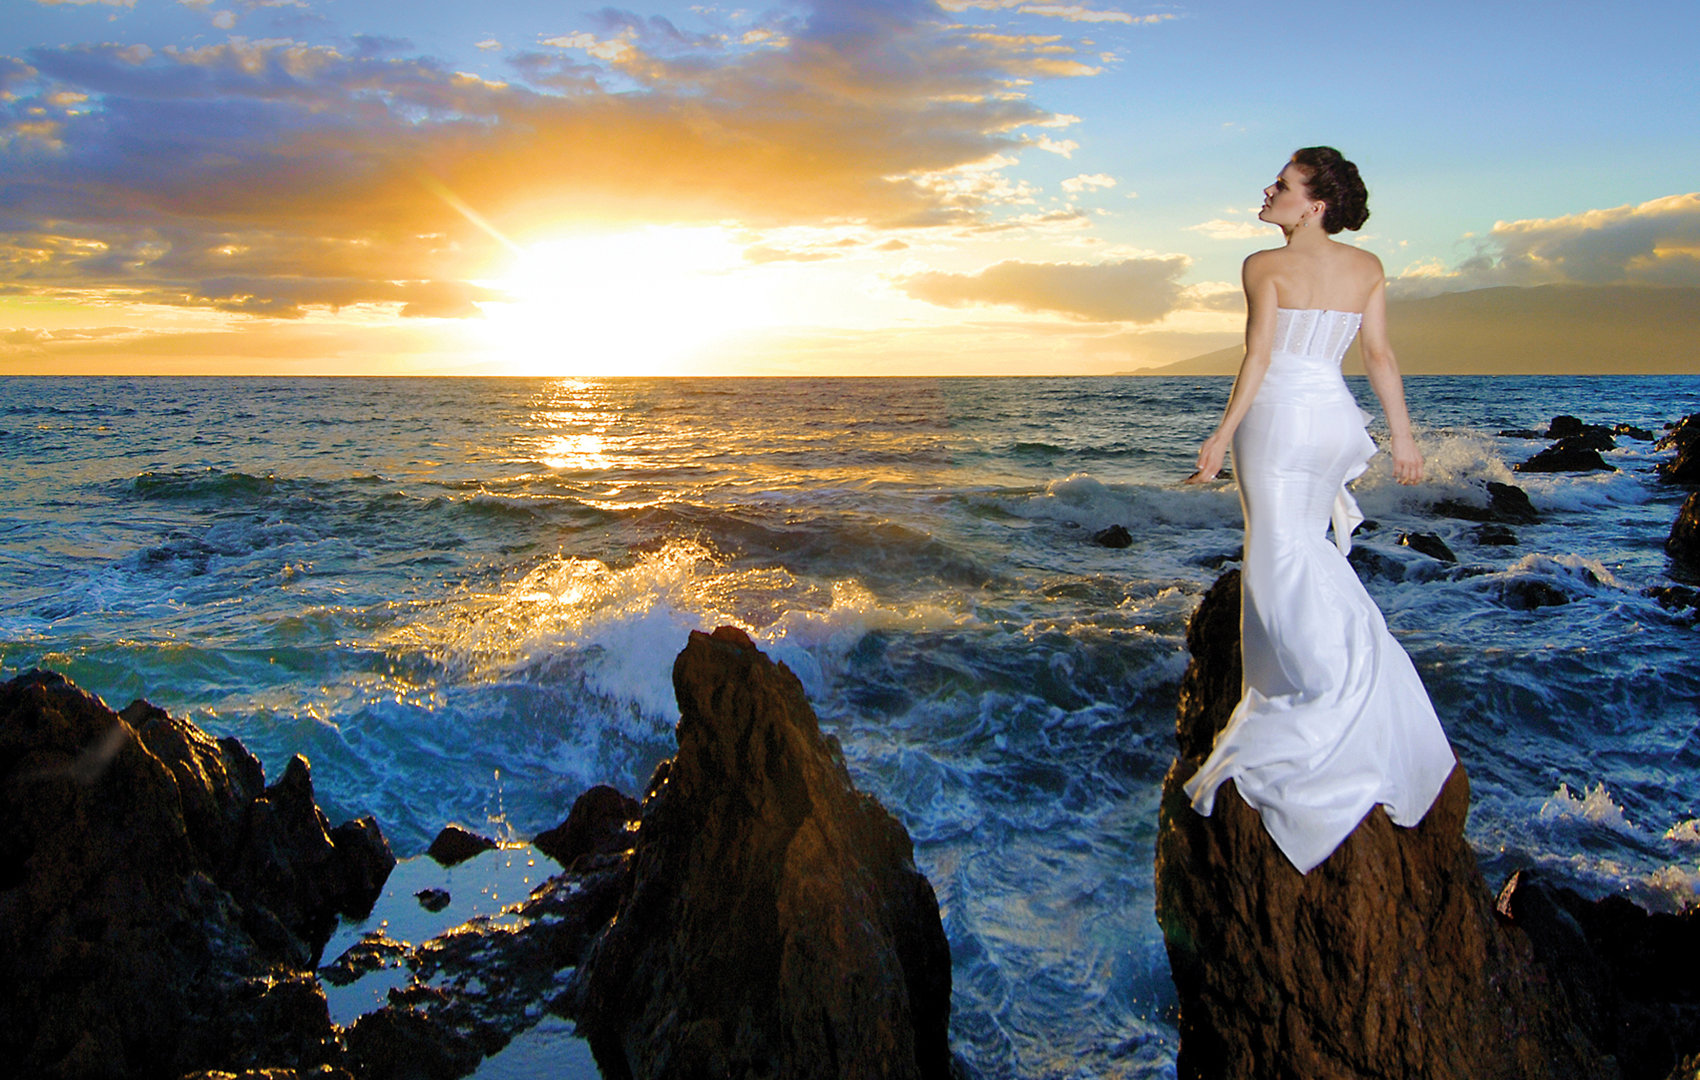 Maui beauty photography